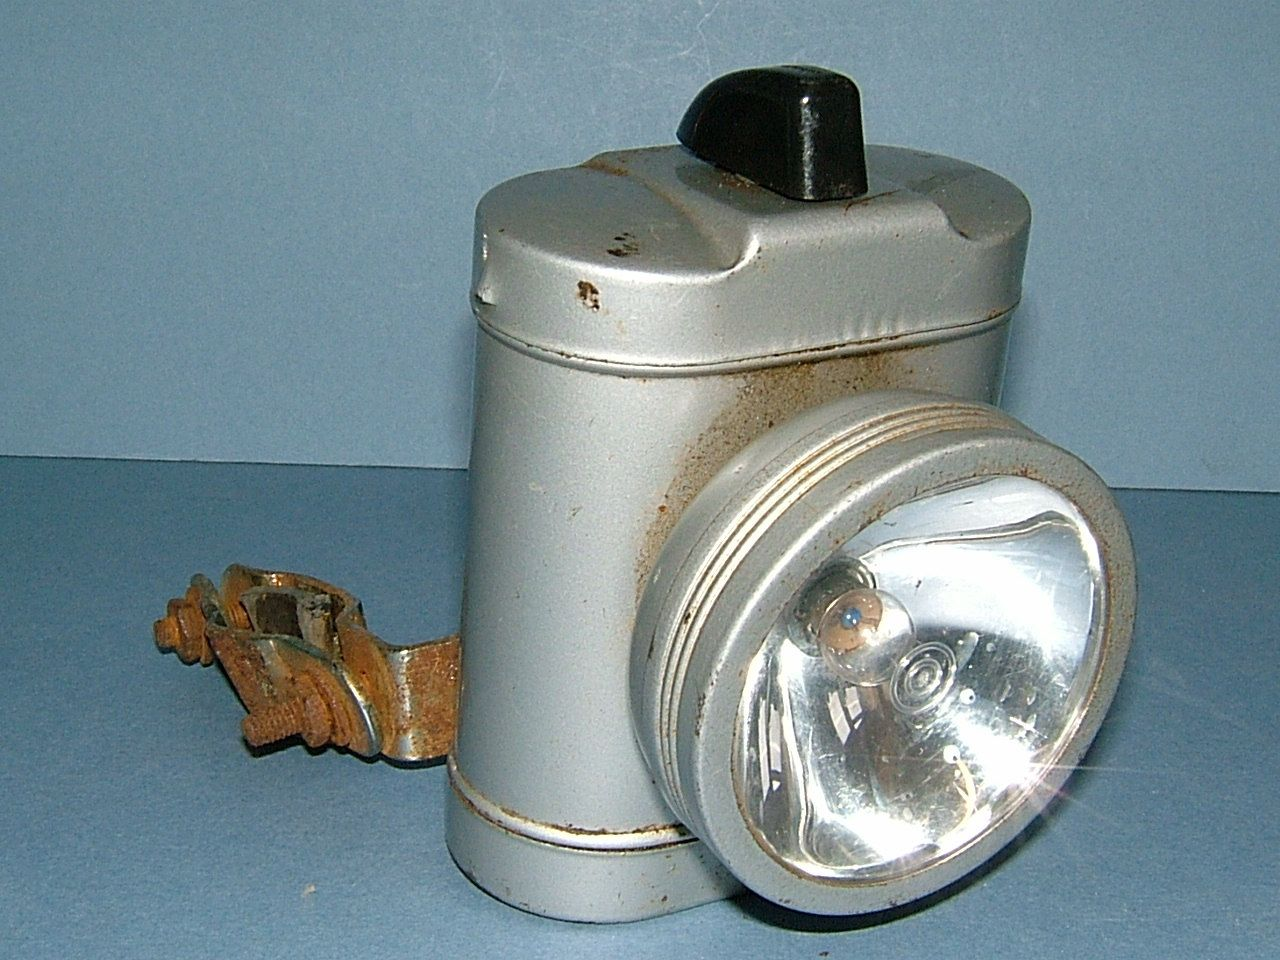 Items Similar To 1970s Ever Ready Bicycle Front Light Lamp With Handle Bar Mount Made In England On Ets Childhood Memories The Good Old Days Sweet Memories